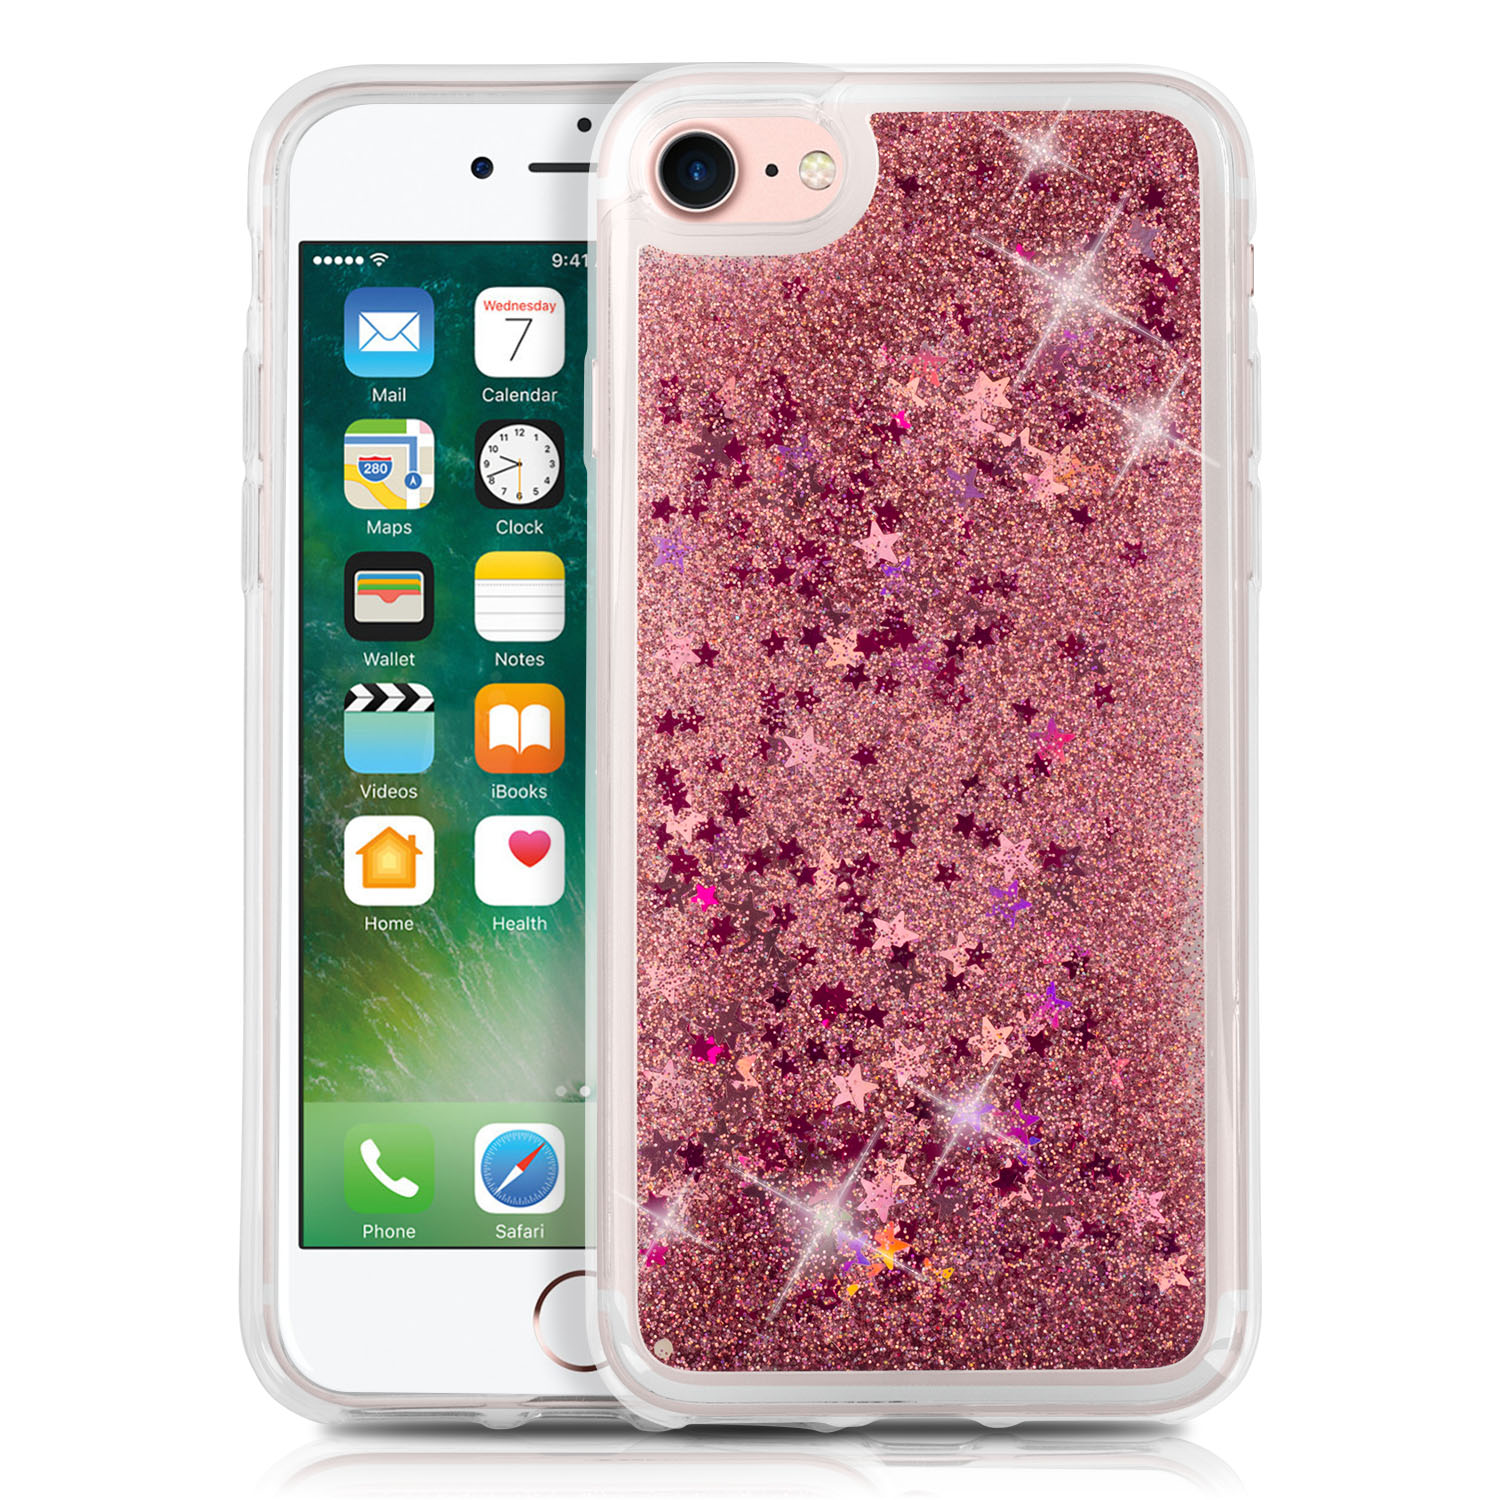 iPhone 7 and iPhone 8 Case, SOJITEK Floating Liquid Clear Case for iPhone 7 & iPhone 8 Soft Cover TPU Bumper Bling Bling Case (Rose Gold + Star)